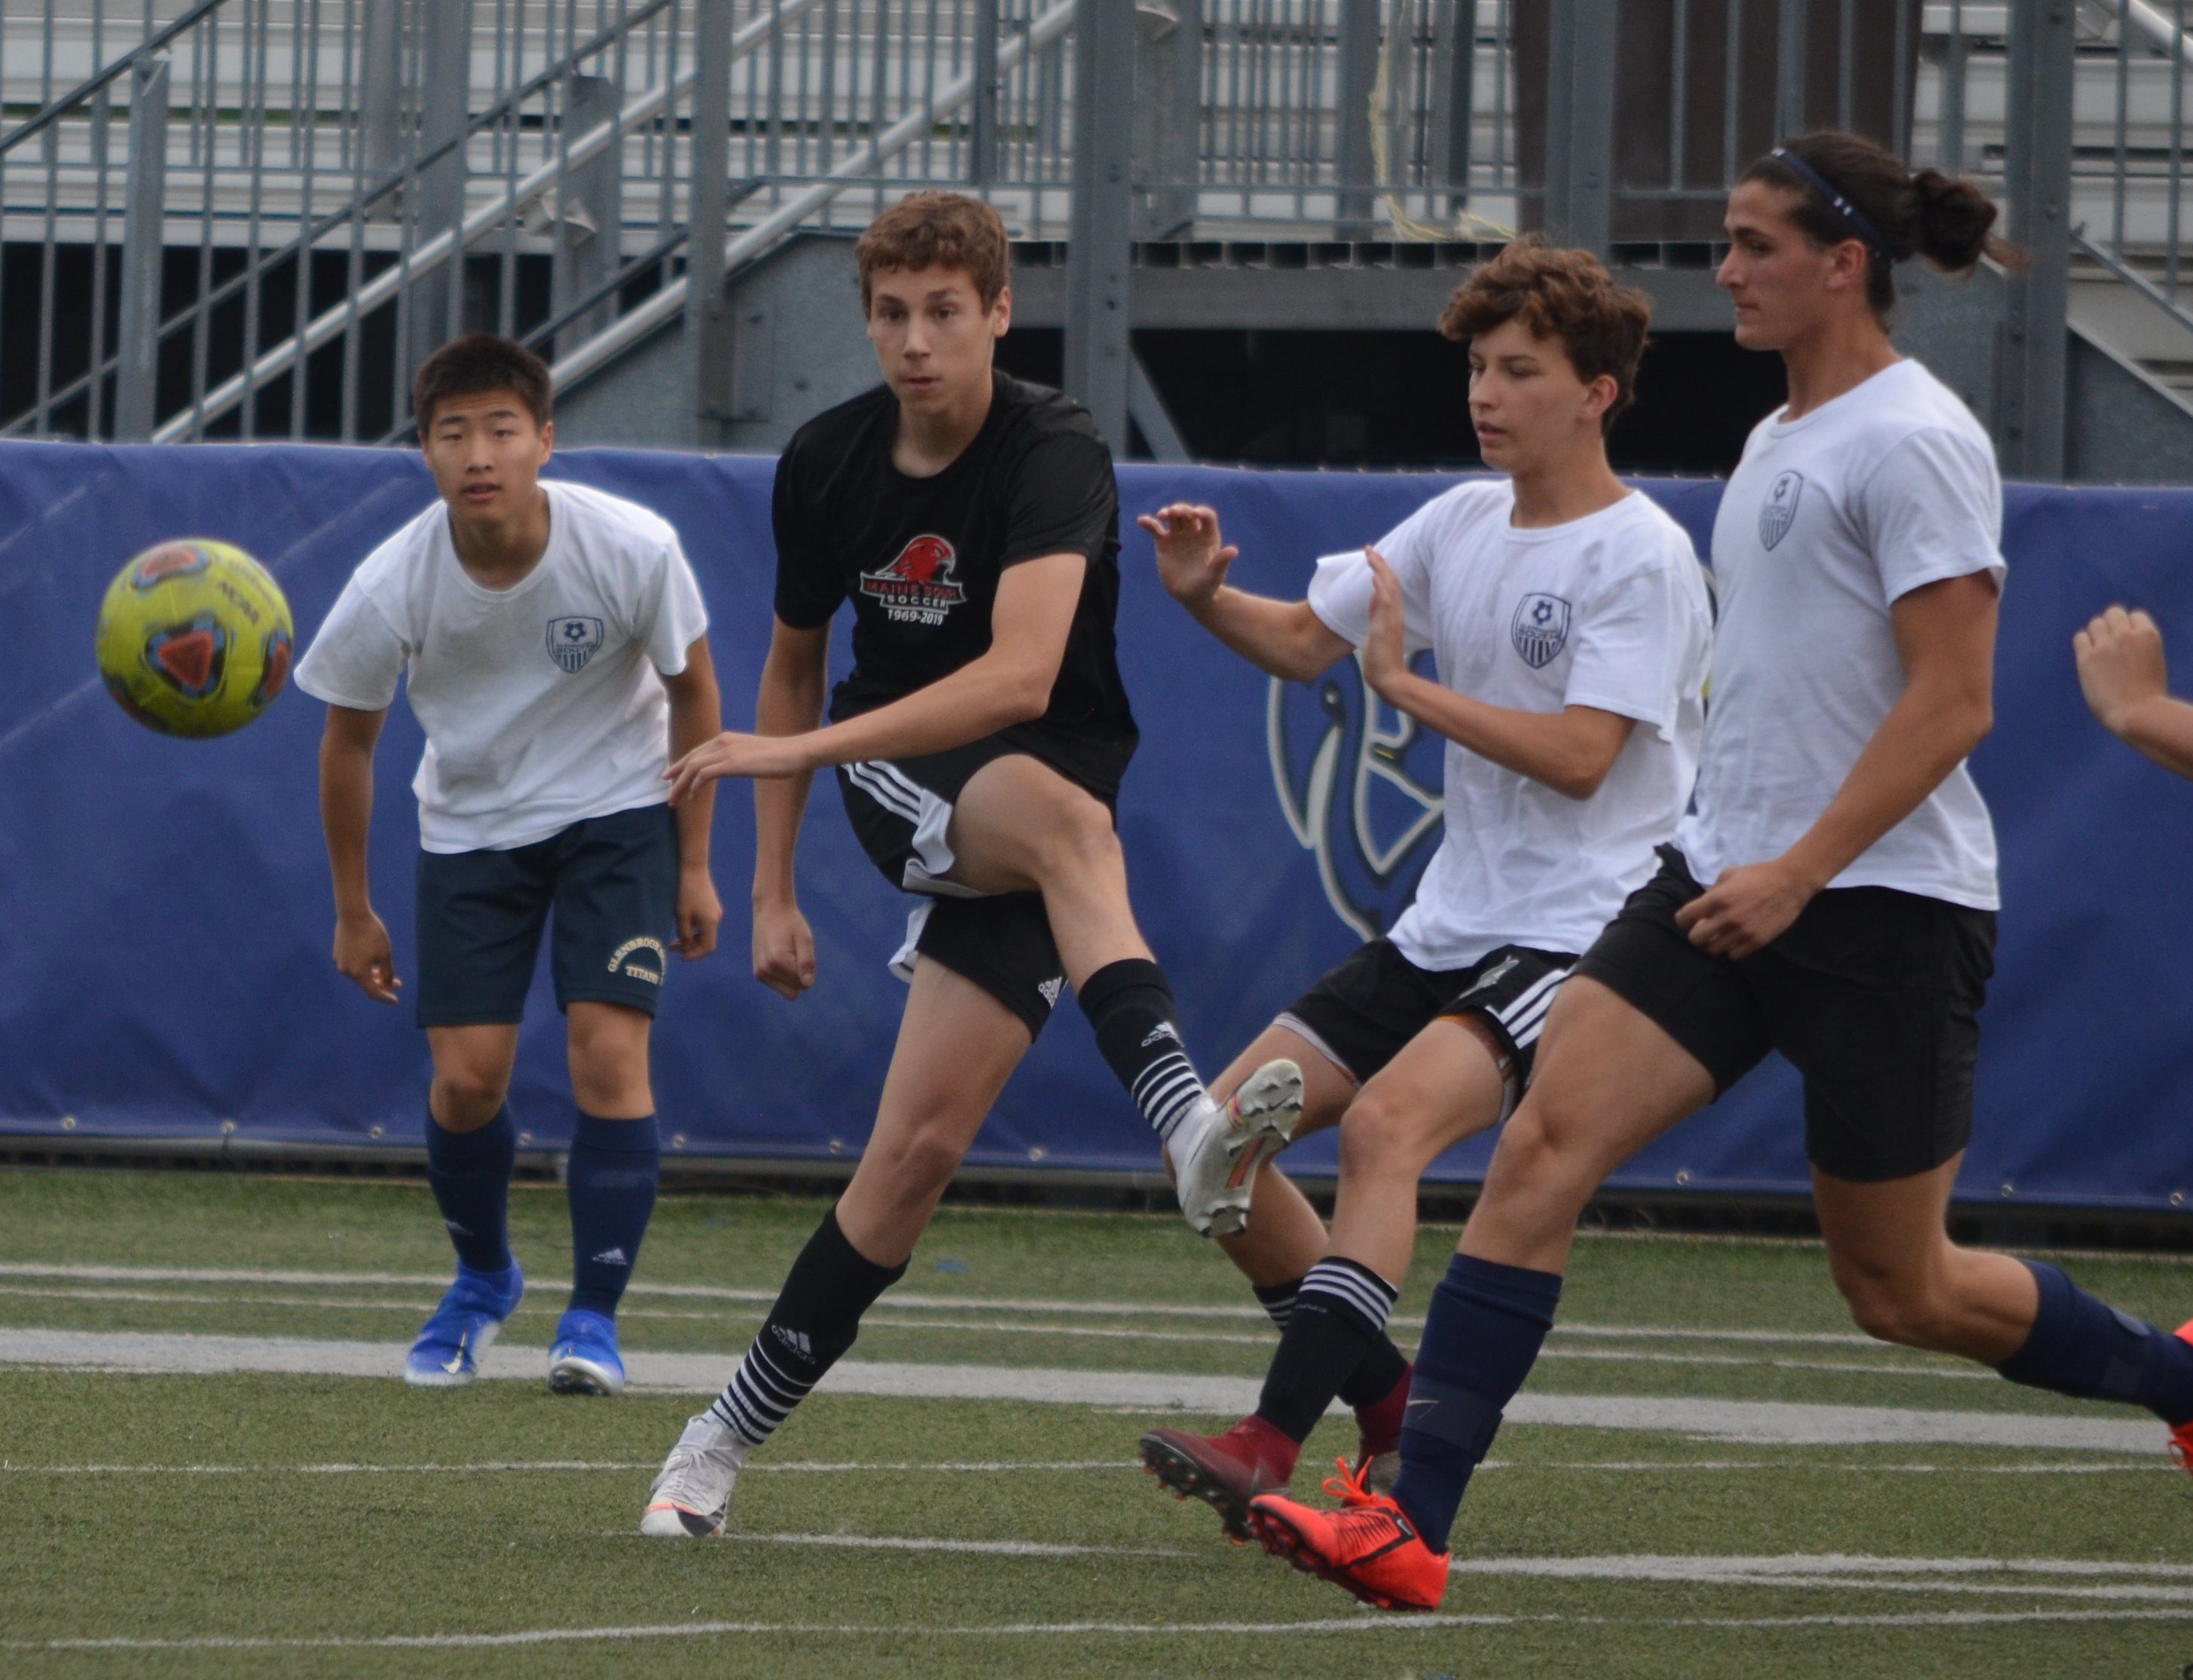 Maine South Soccer Grows Over Summer | Journal & Topics